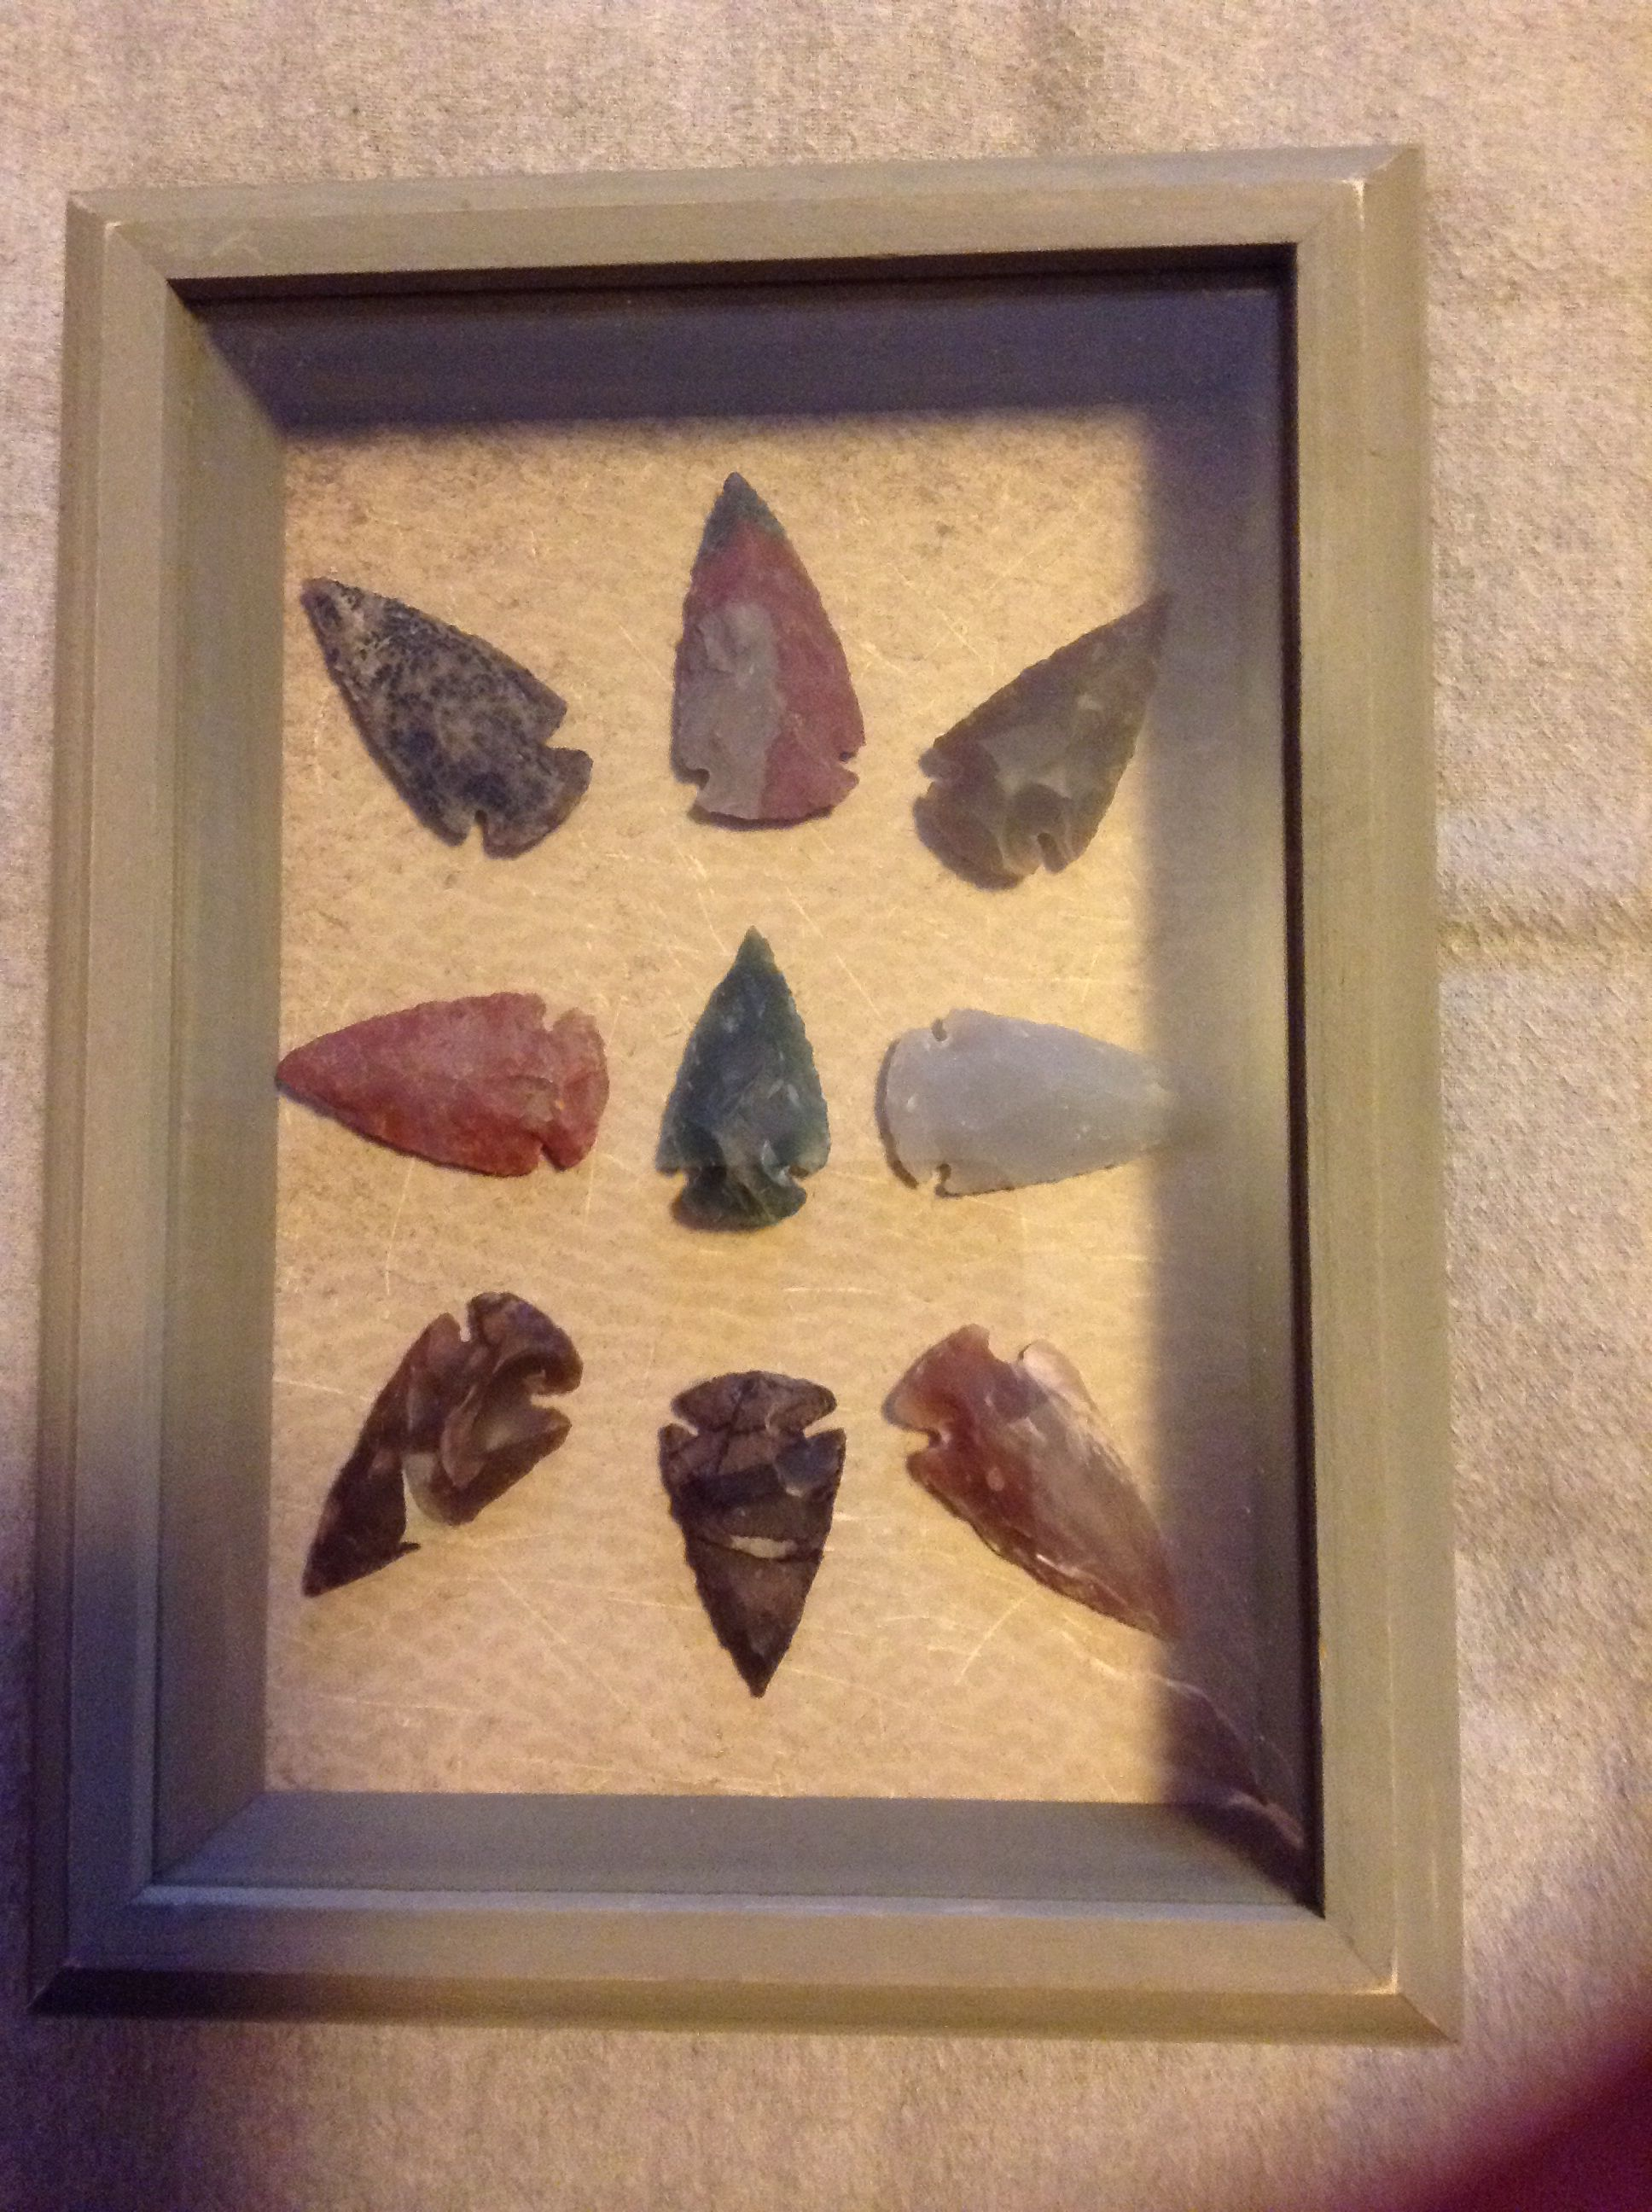 Arrowheads I Bought I Put Them In A Shadow Box I Bought From Hobby Lobby This Is Going In My Wall Art Colle Diy Shadow Box Native American Tools Shadow Box